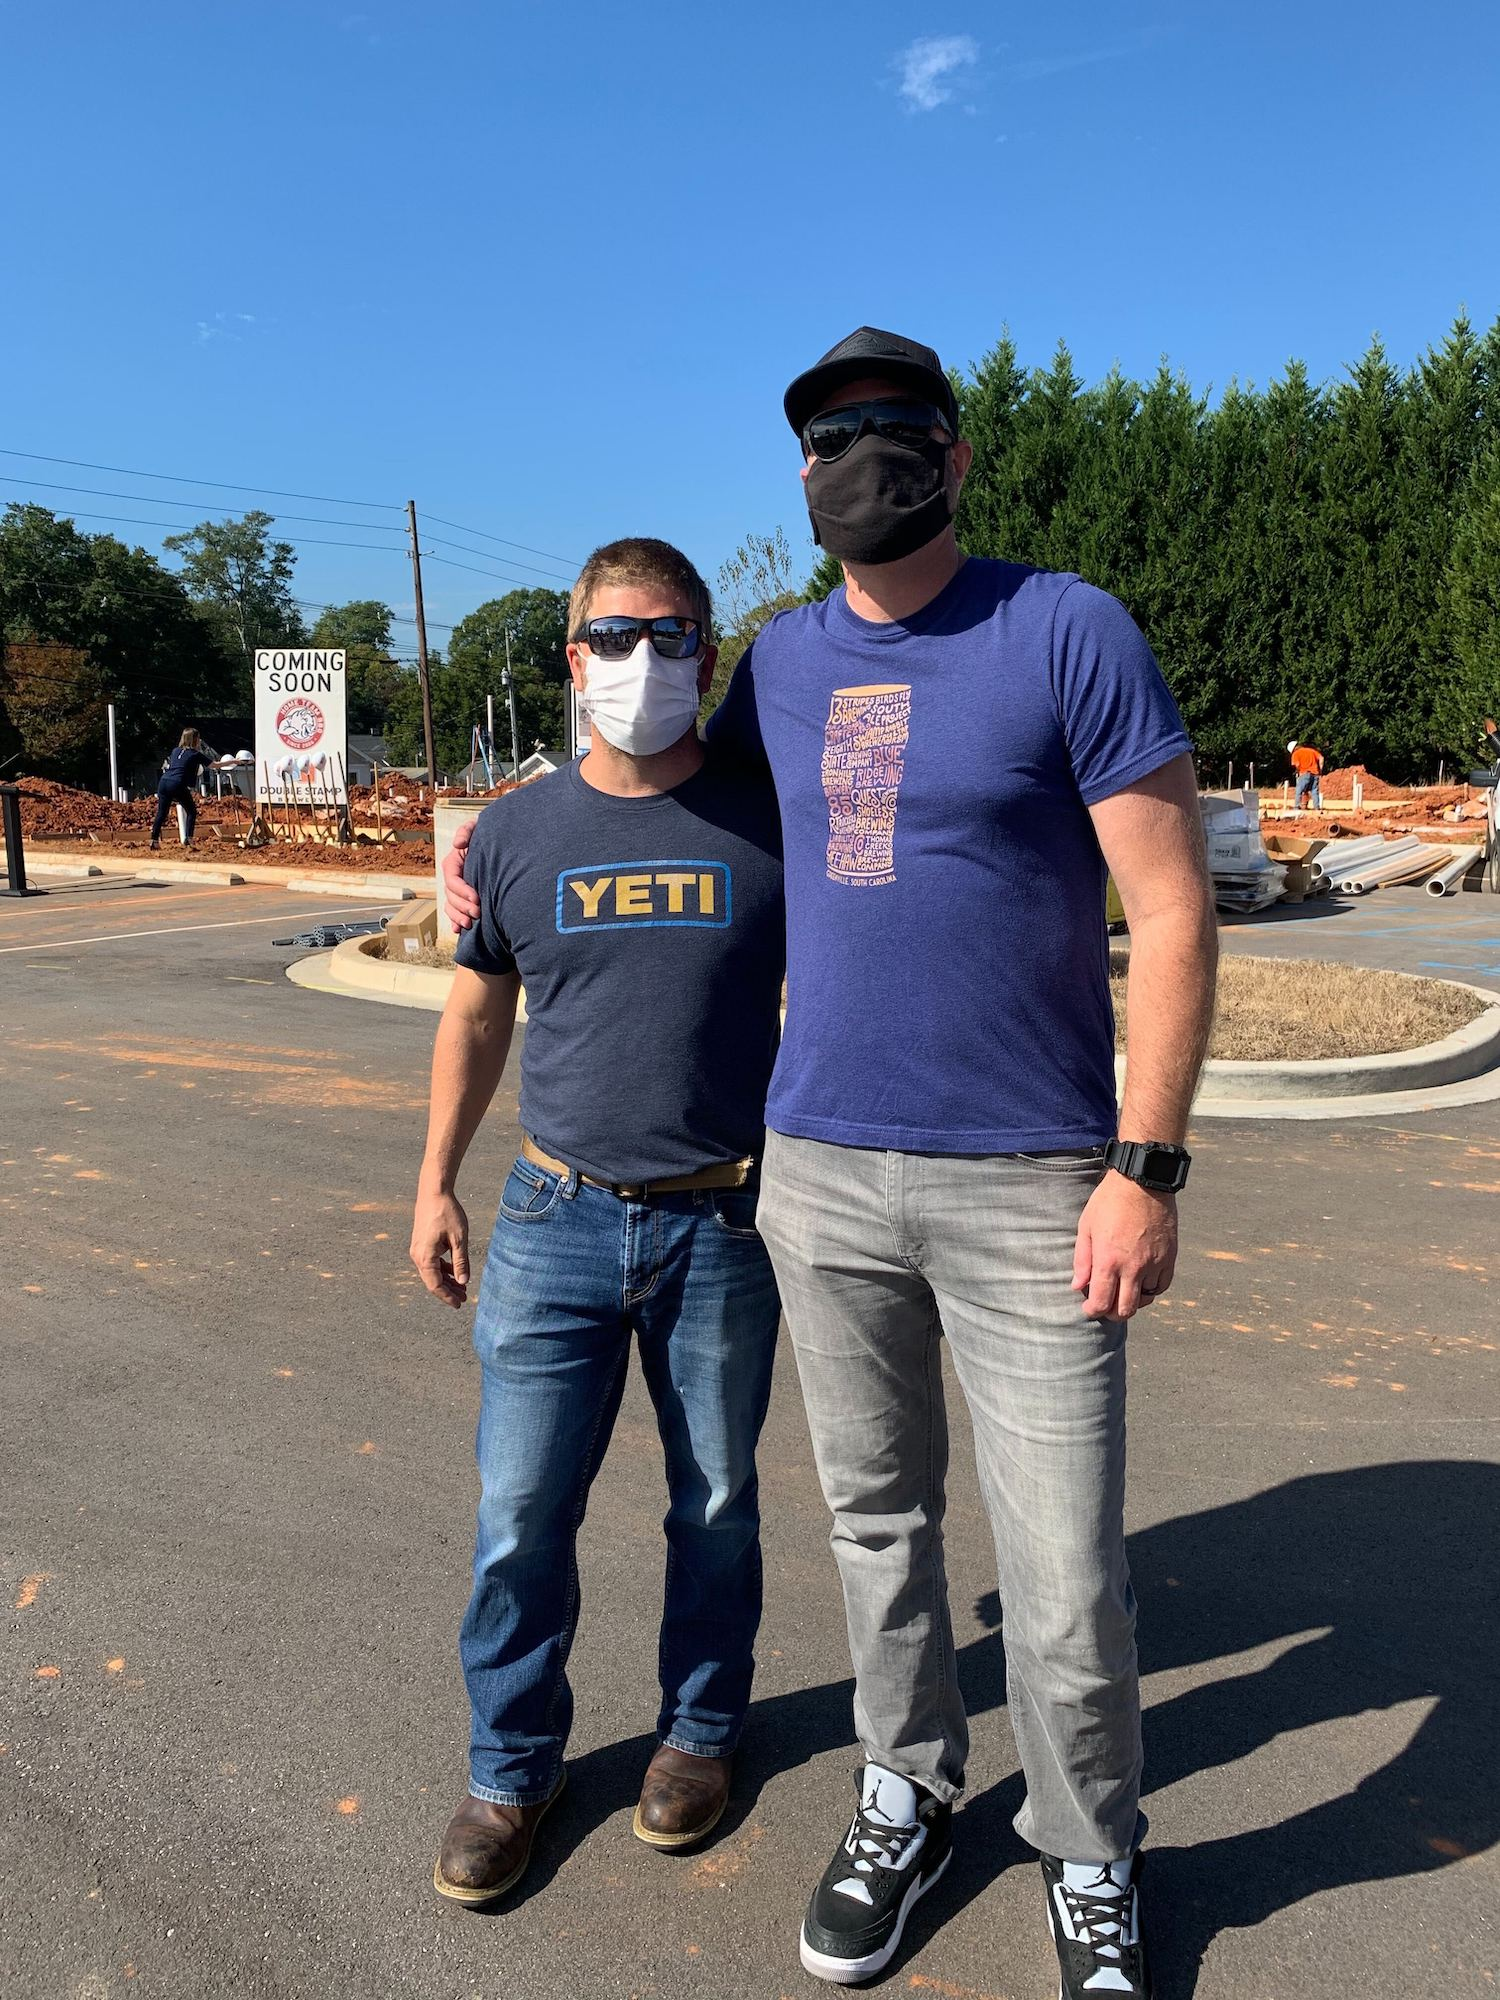 At left, Aaron Siegel (owner of Home Team BBQ) + at right, Nate Tomforde (owner of Double Stamp Brewery) | Photo by GVLtoday team